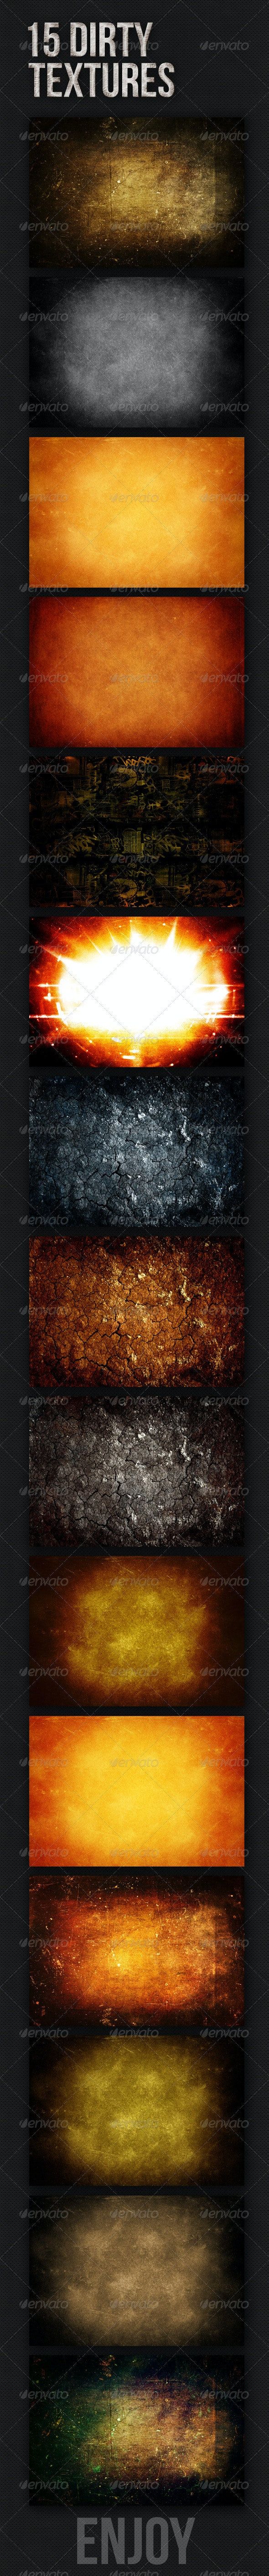 15 Dirty Textures  - Industrial / Grunge Textures